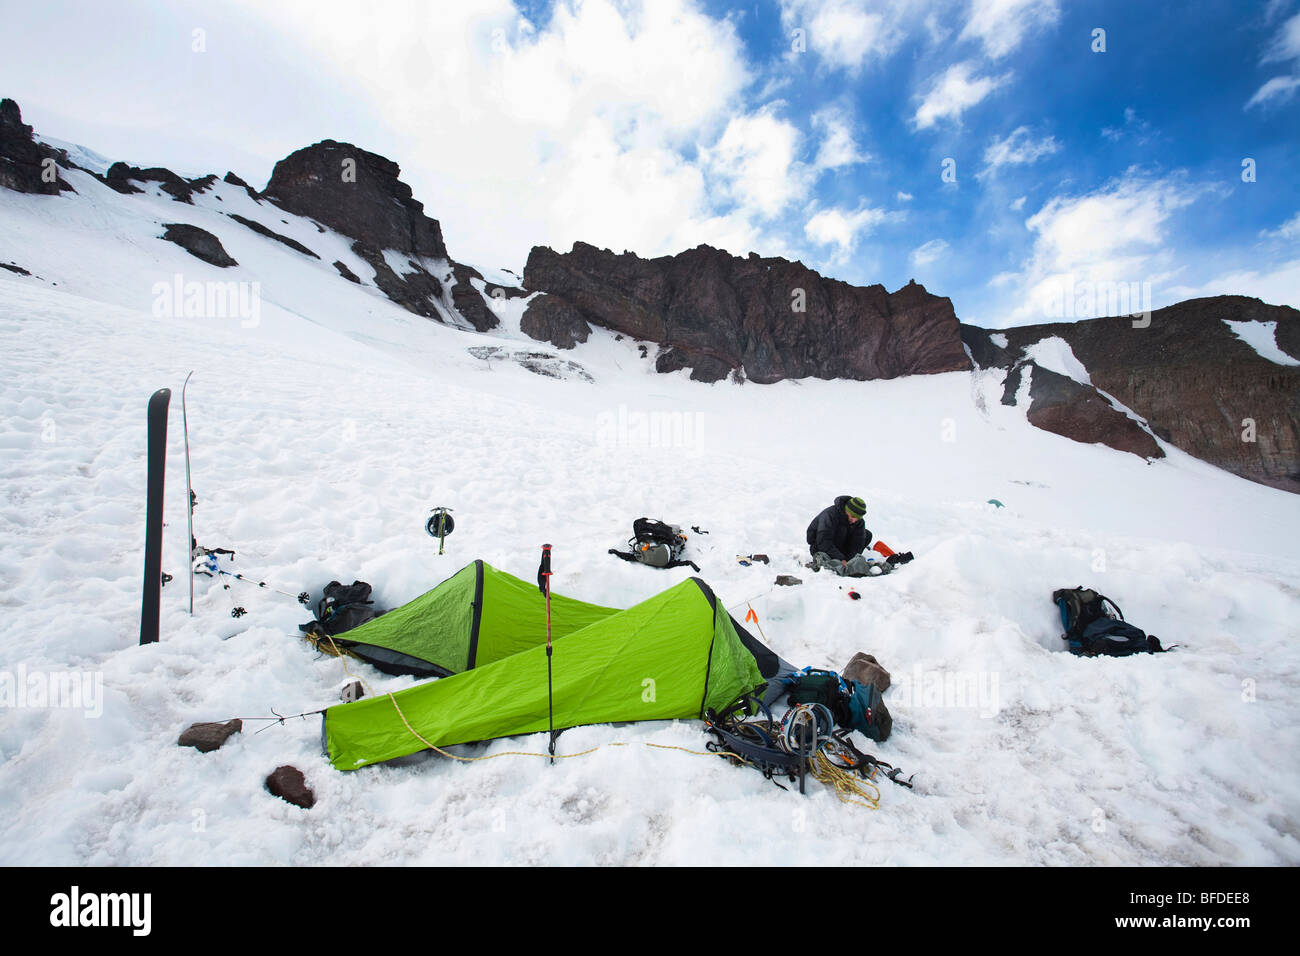 Two bivy sacks and skis indicate a campsite in the middle of snowfield.eld. - Stock Image